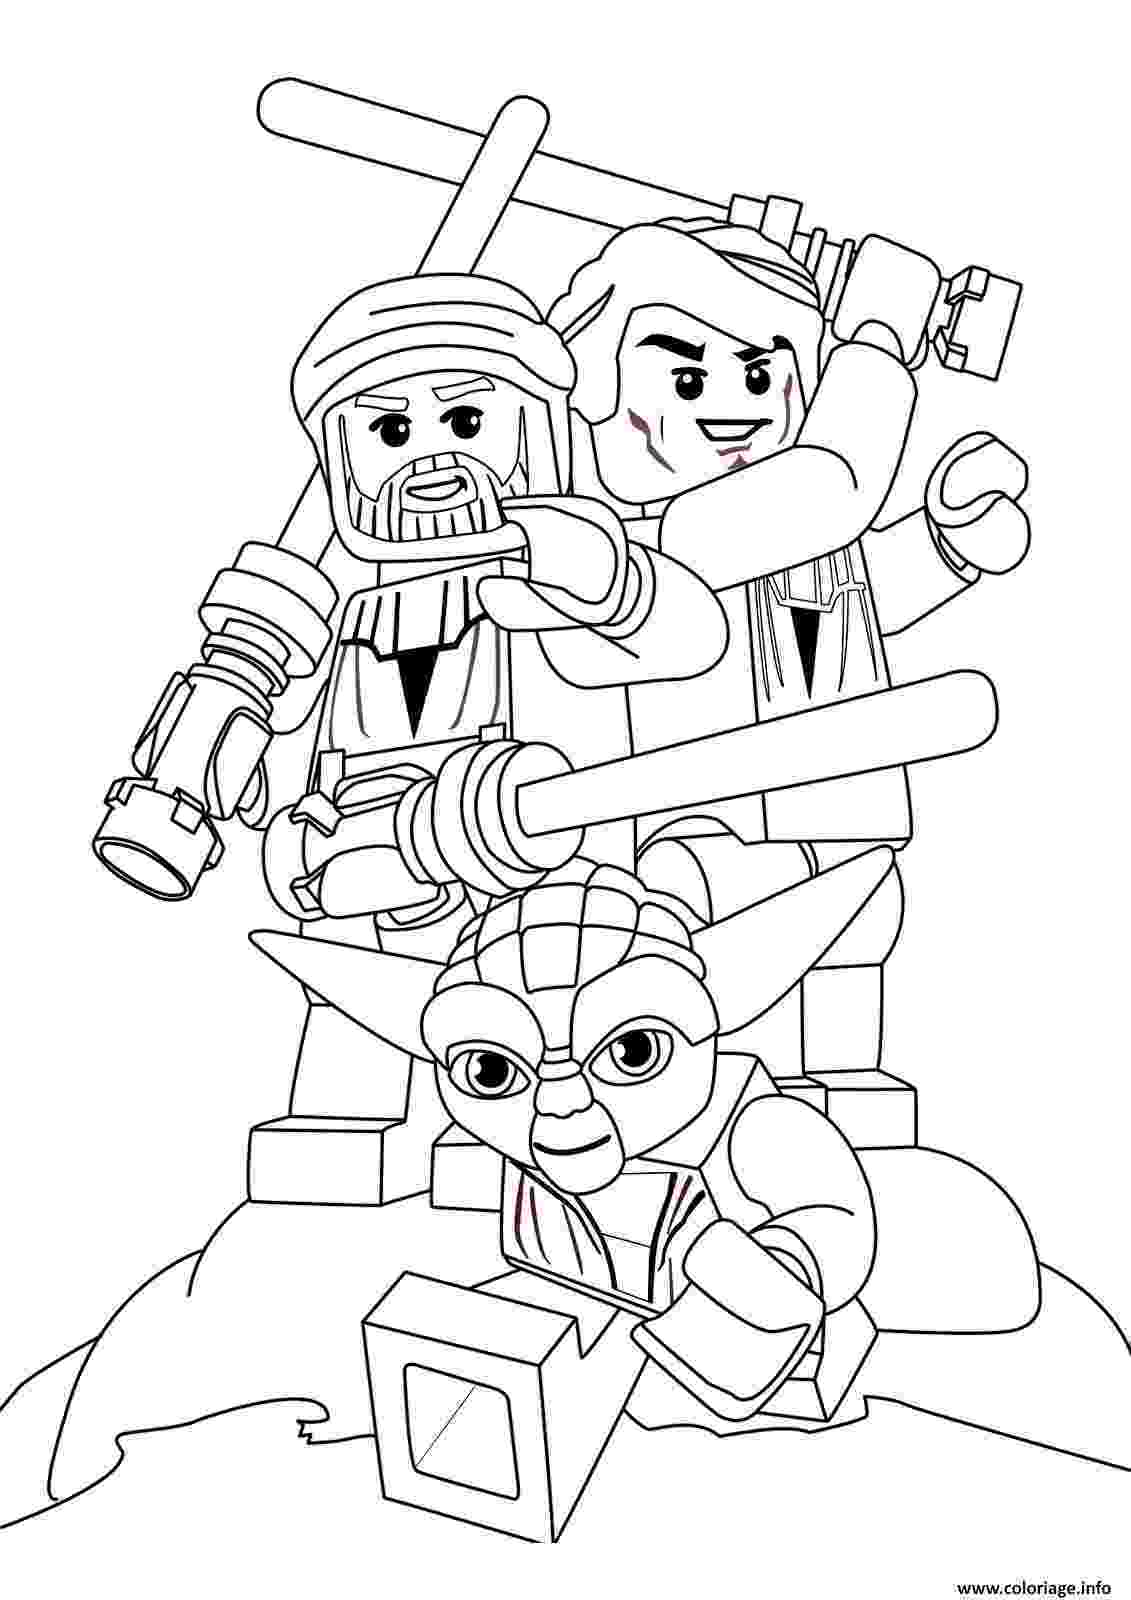 coloriage lego star wars coloriage lego star wars 60 dessin lego coloriage wars star